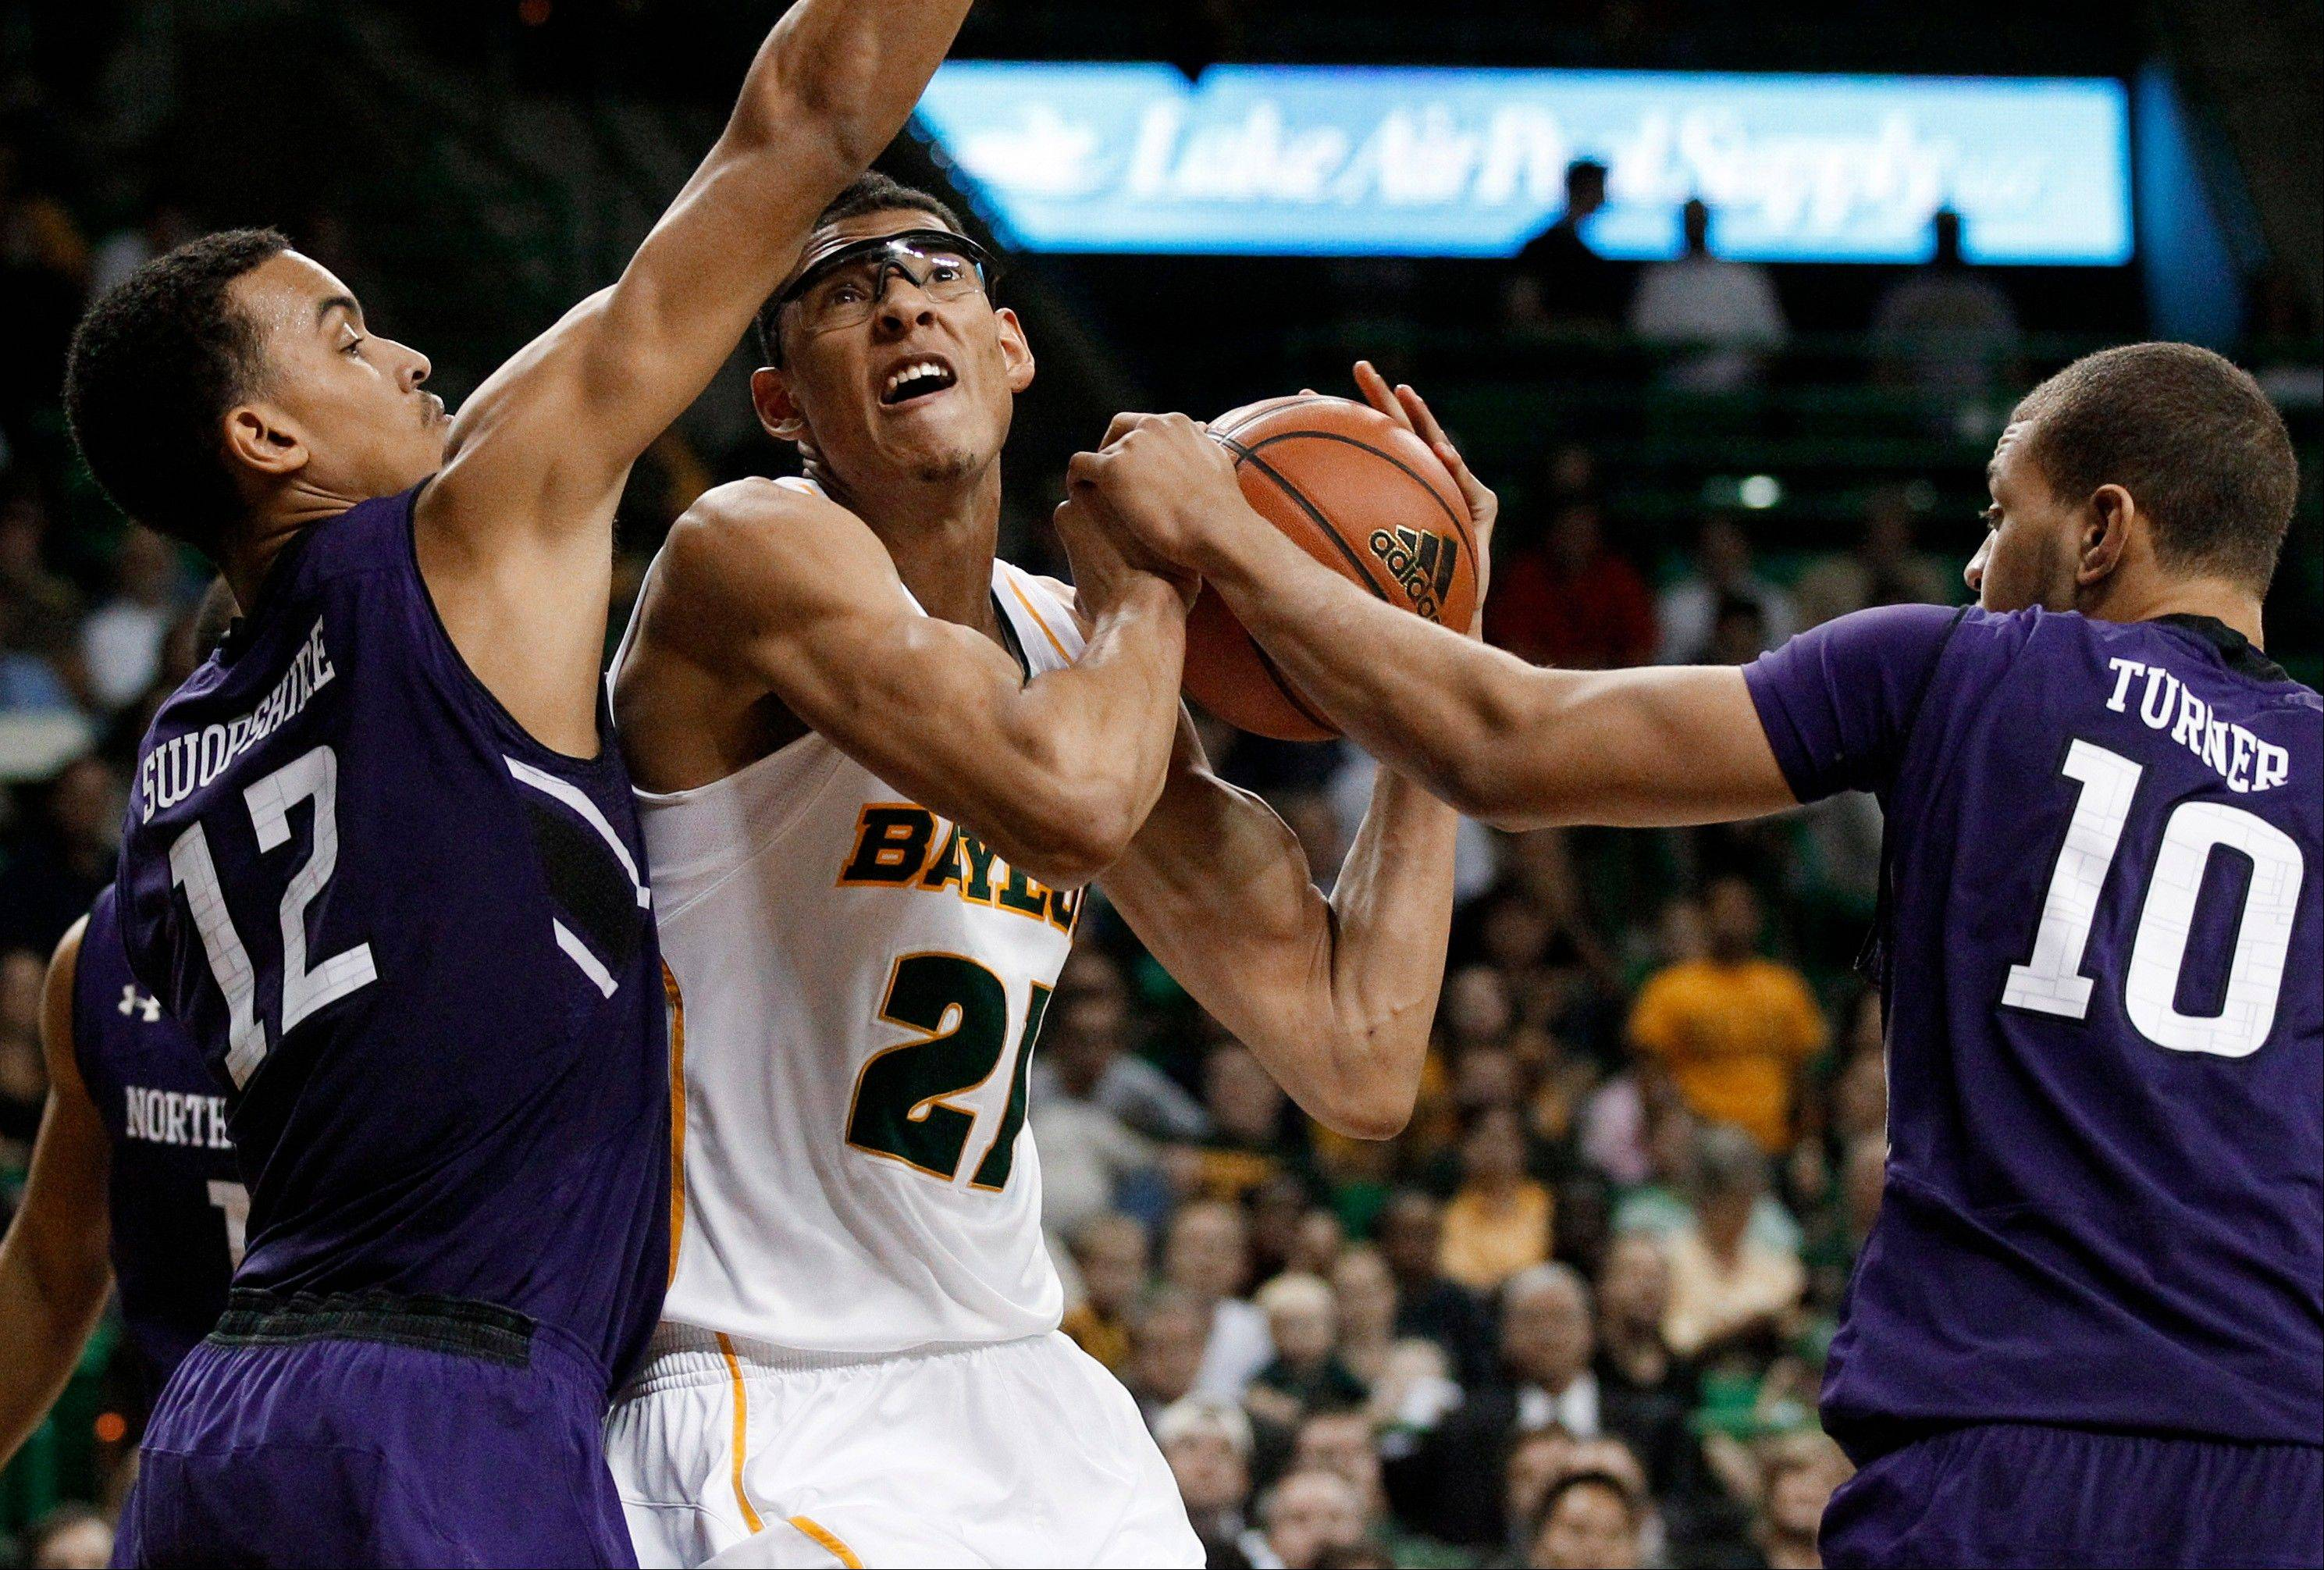 Northwestern's Jared Swopshire (12) and Mike Turner (10) combine to stop a drive to the basket by Baylor's Isaiah Austin (21) in the second half Tuesday in Waco, Texas. Northwestern defeated Baylor 74-70.